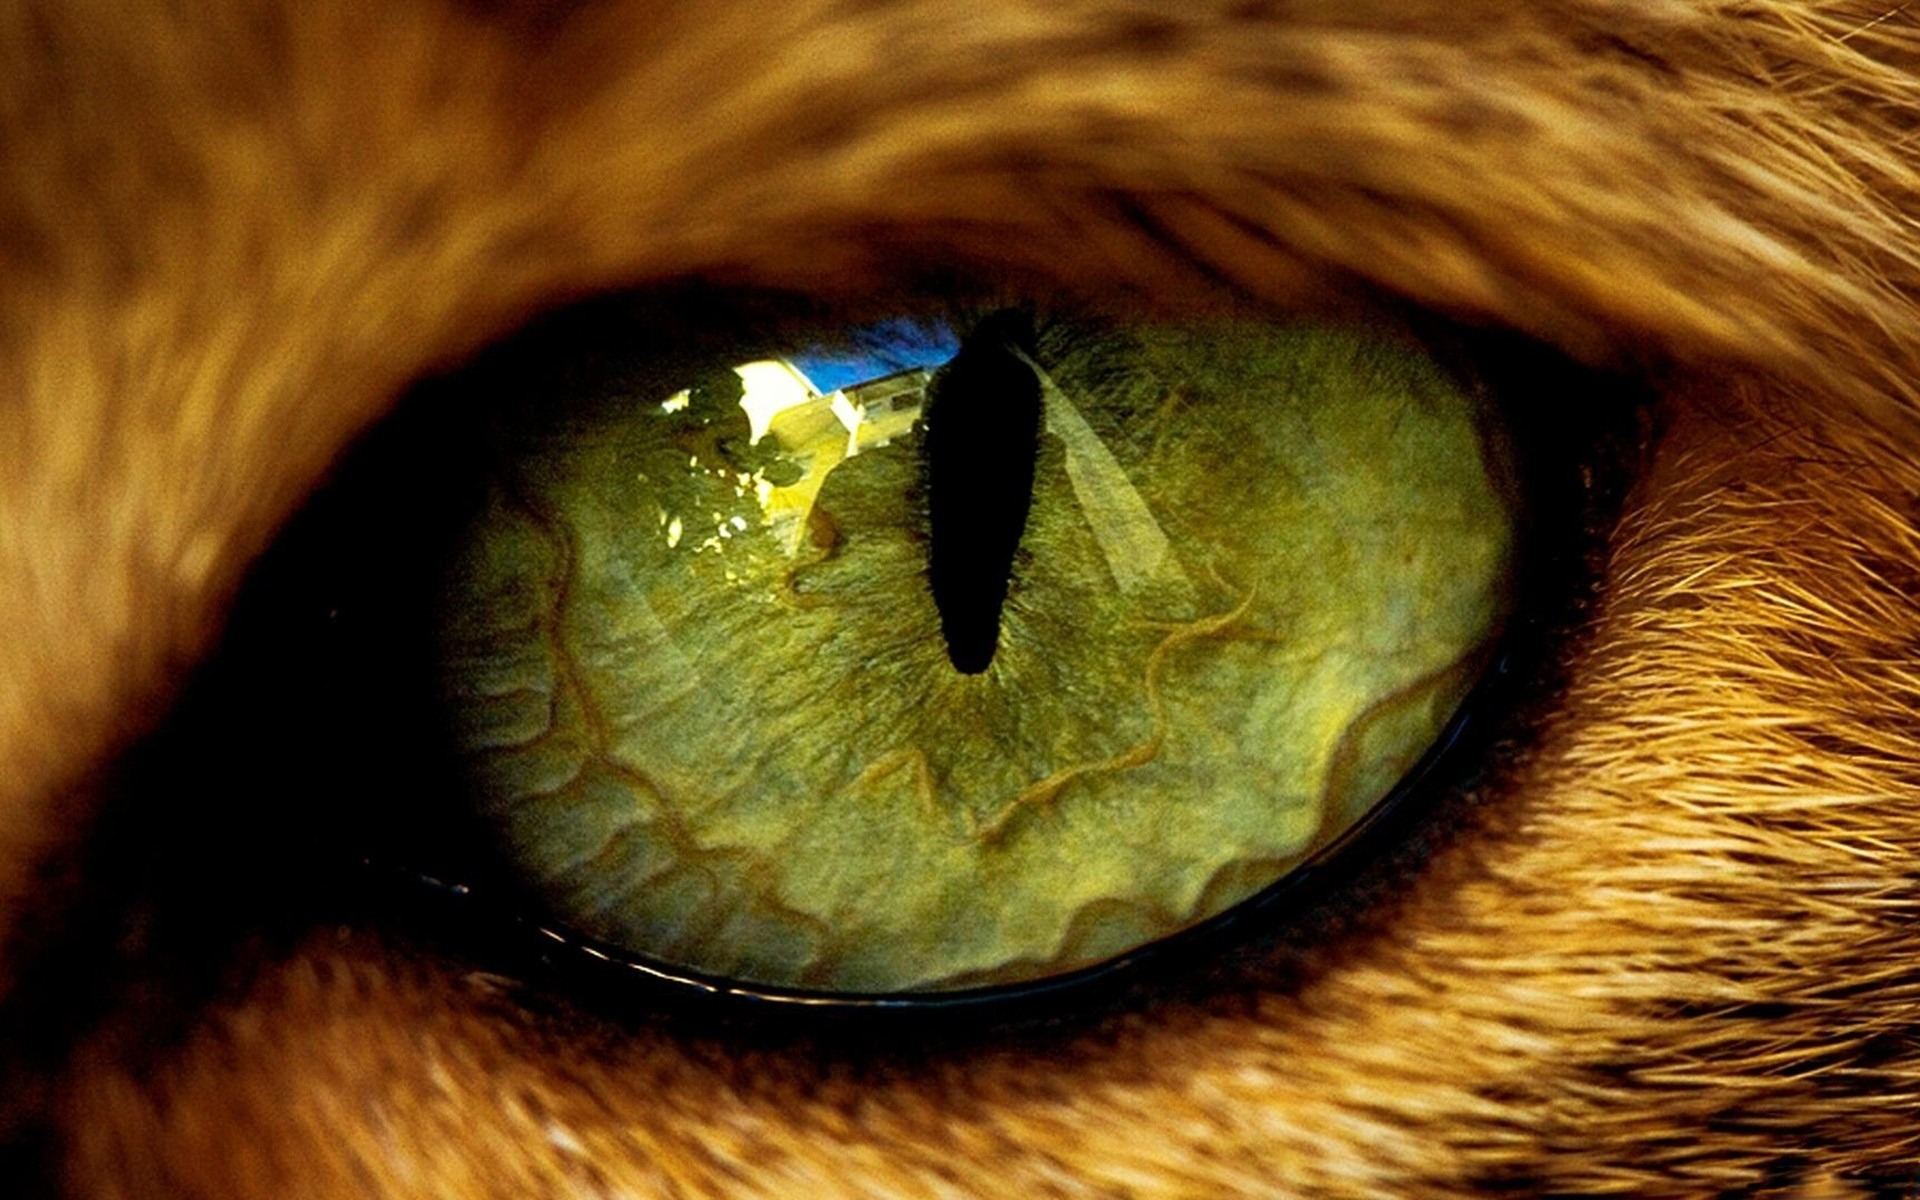 Download high quality 1920 x 1200 Green animal eye Wallpaper.